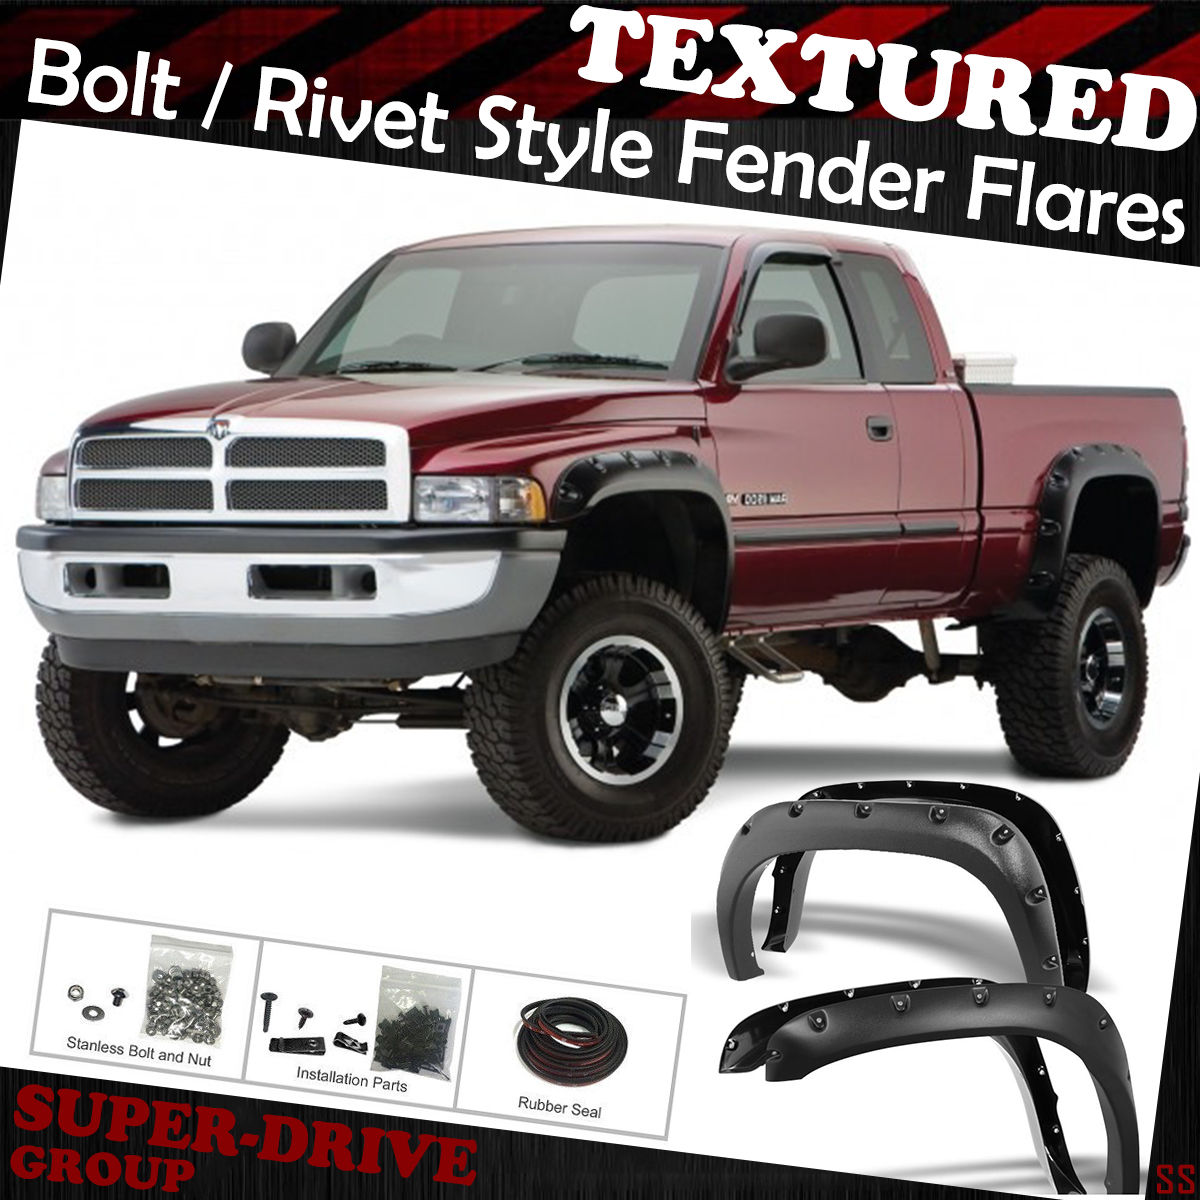 Pocket-Riveted Black Textured Fender Flares For 94-02 Dodge Ram 1500 2500  3500